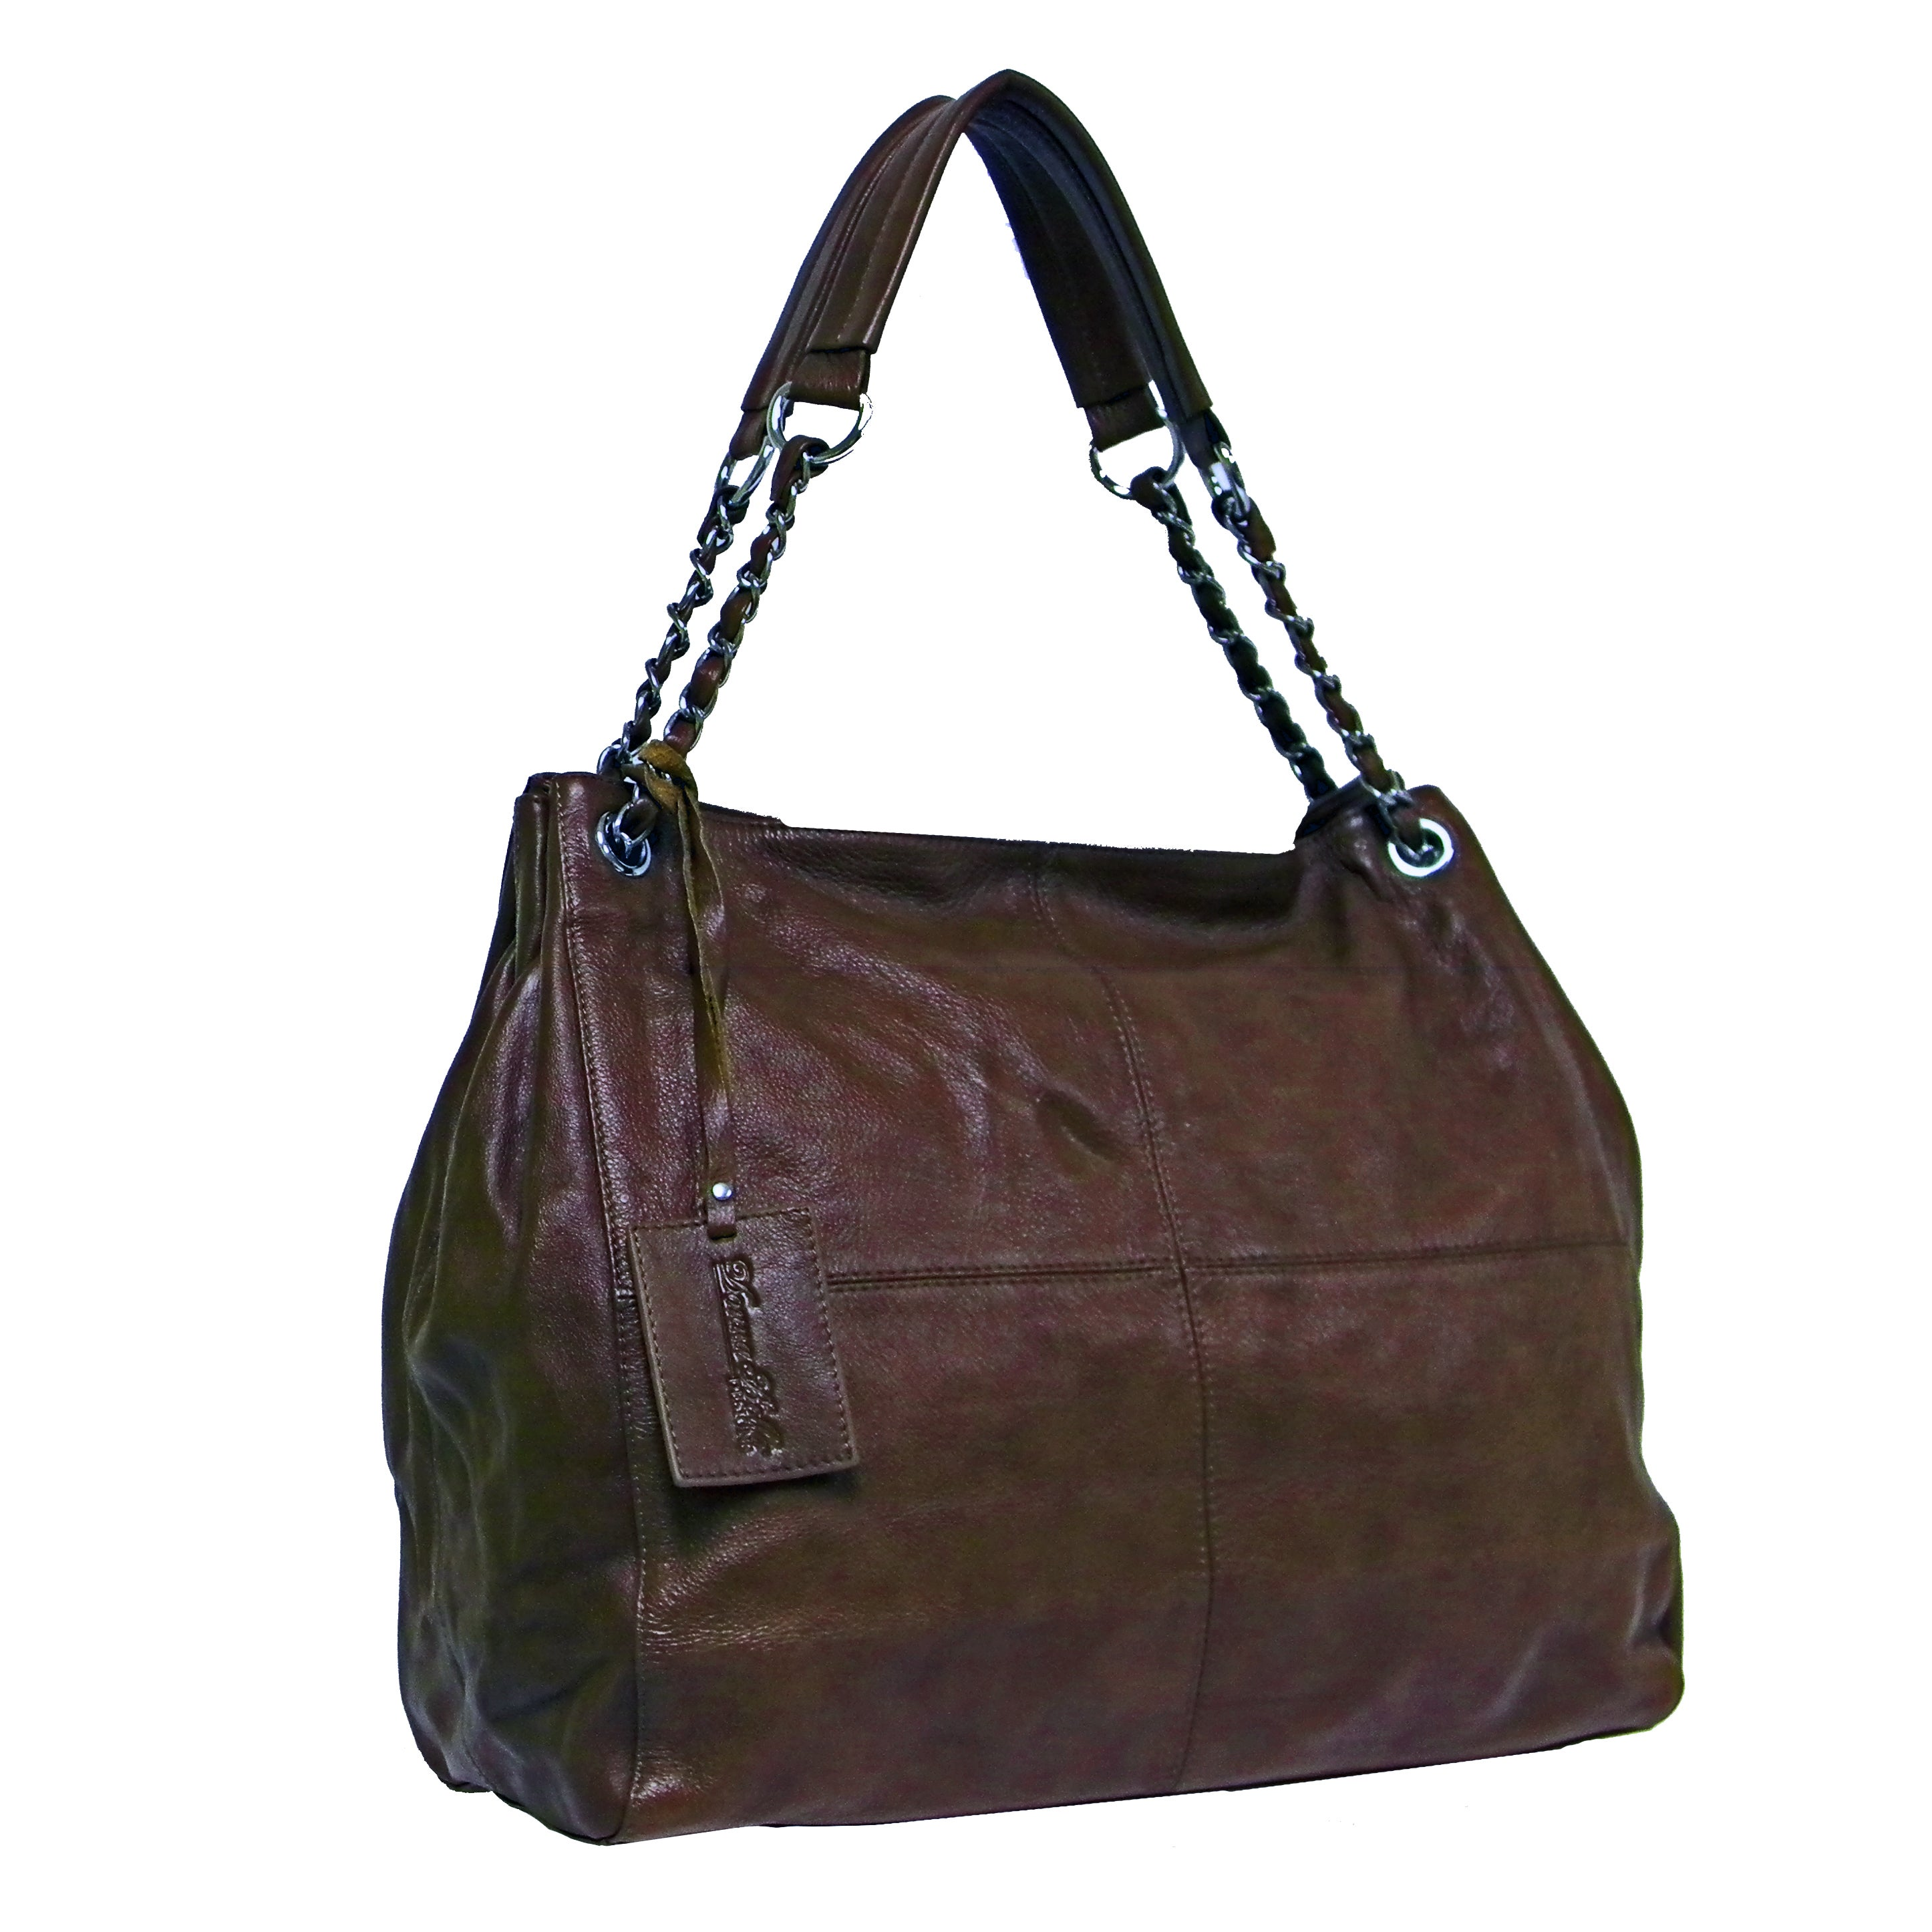 4d4fb89565 Shop Donna Bella Designs 'Slick' Medium Leather Tote Bag - Free Shipping  Today - Overstock - 5581143